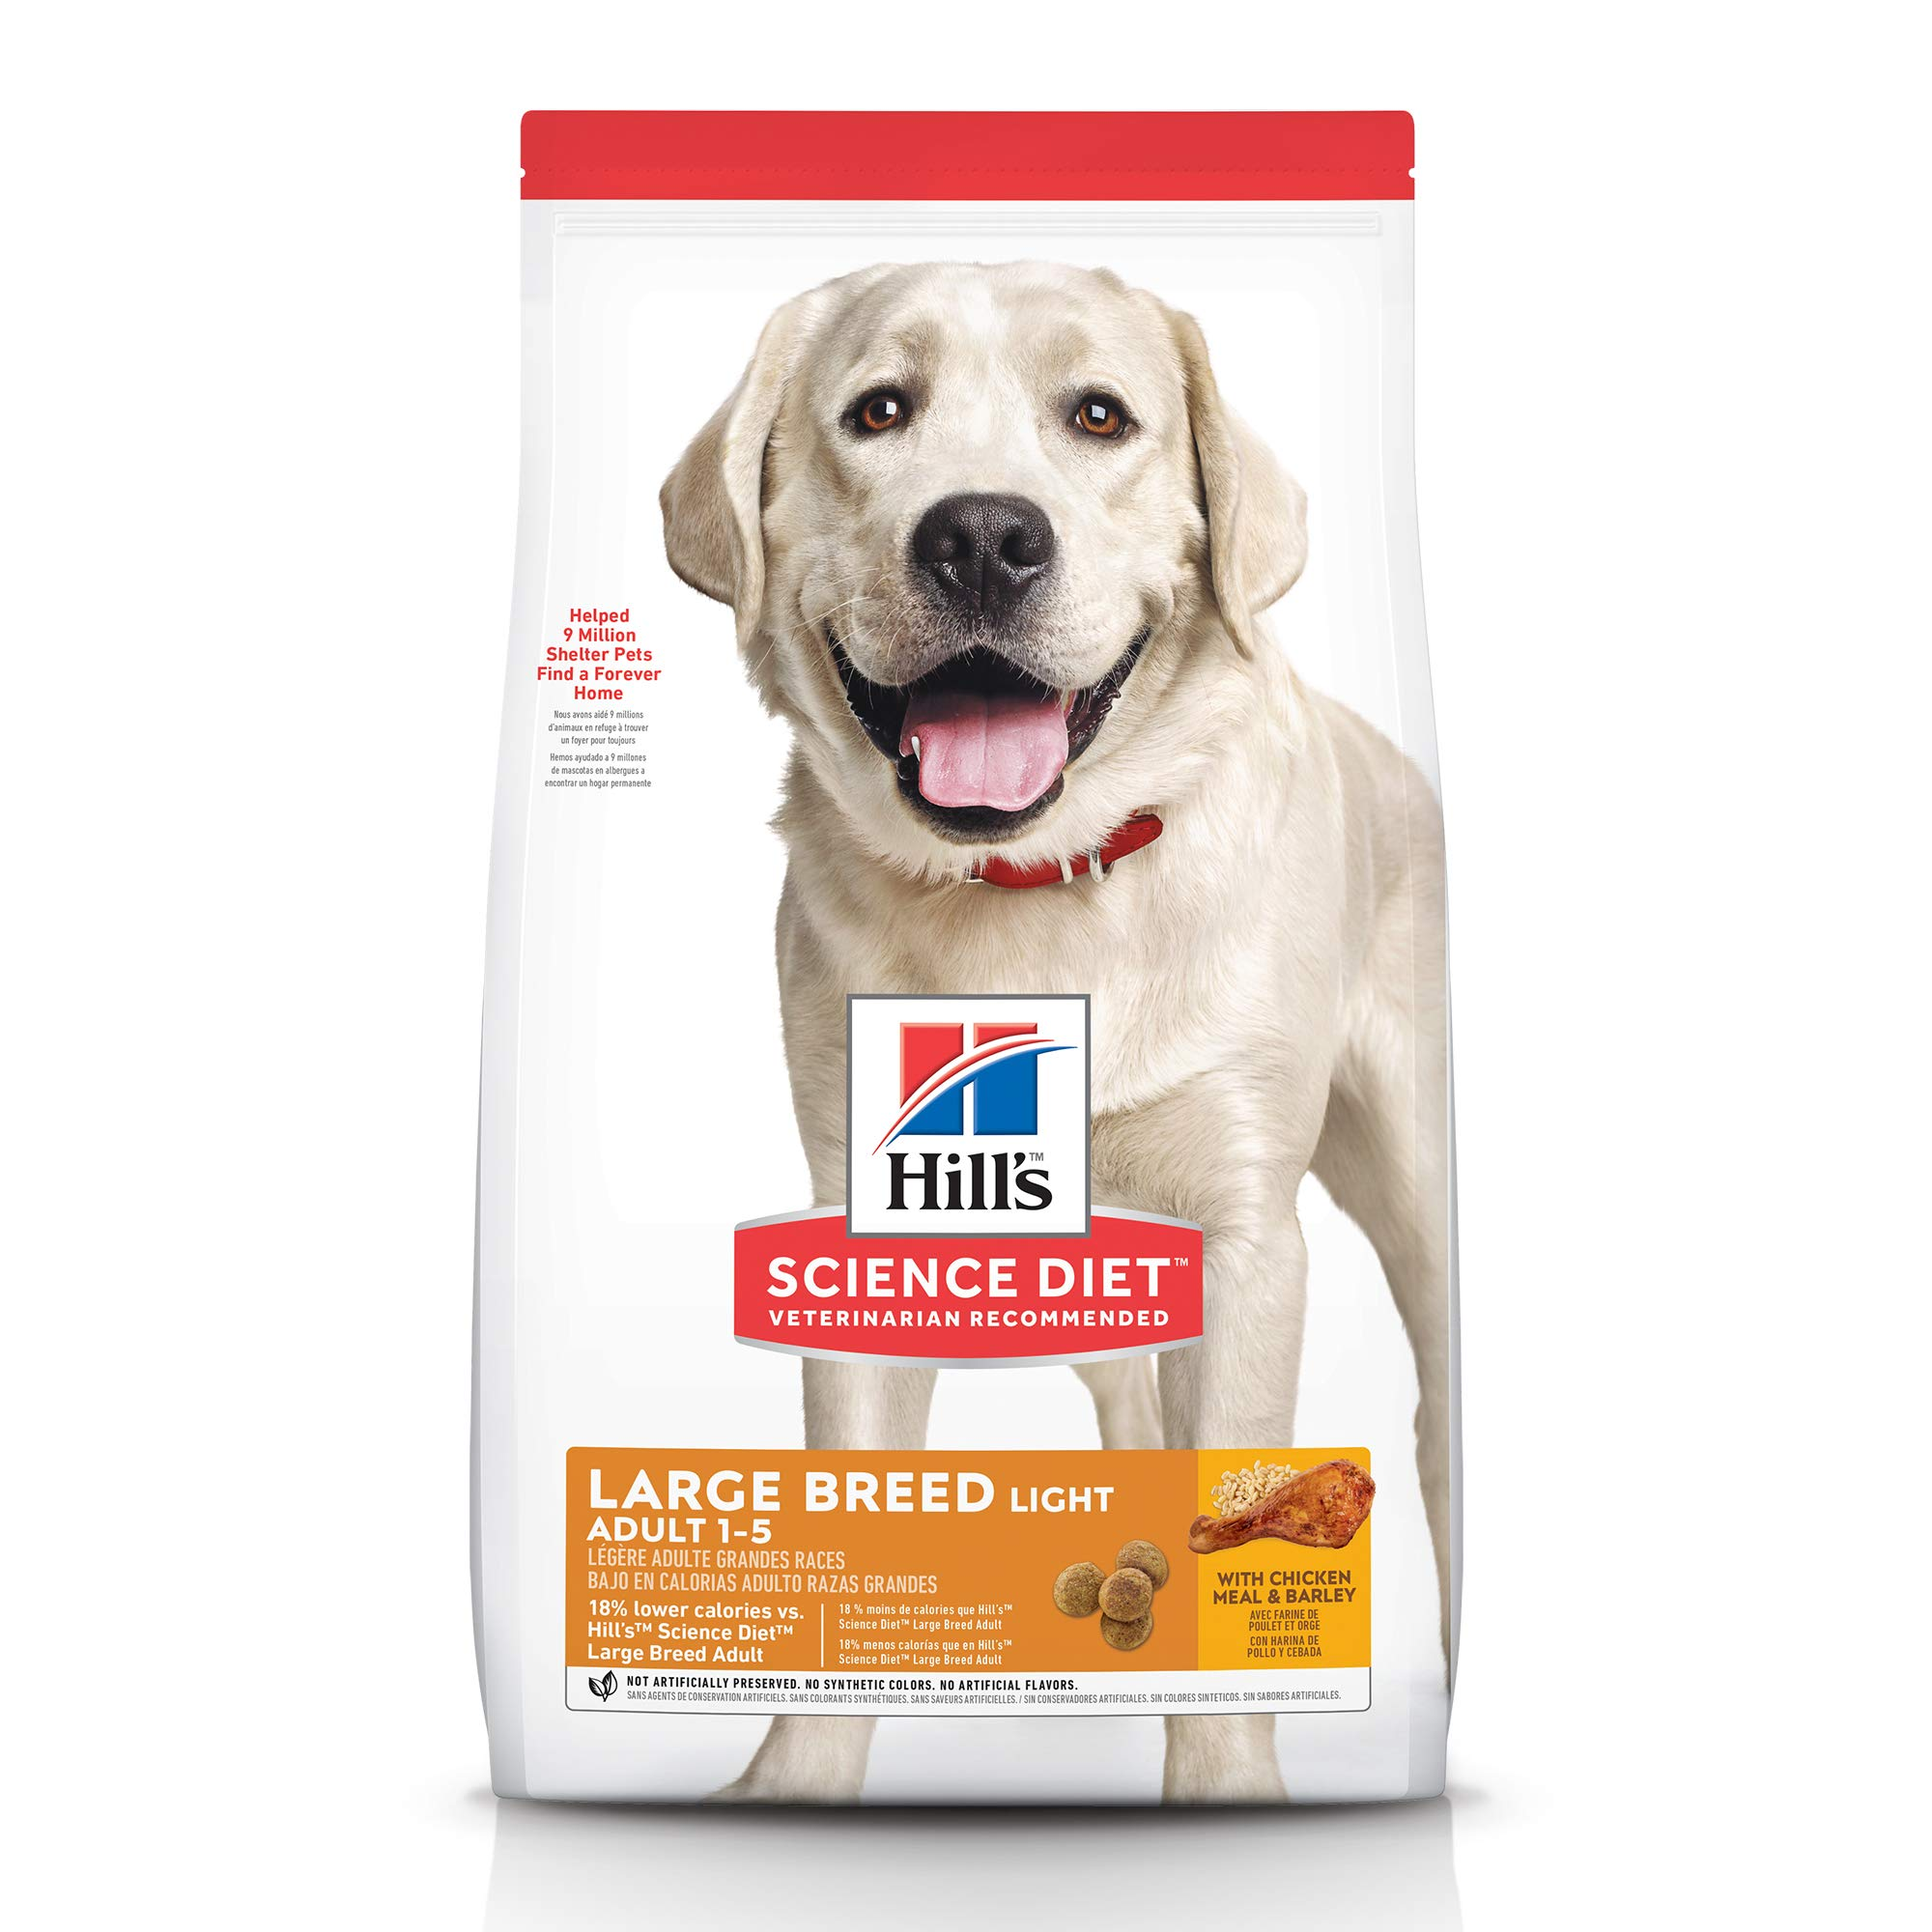 Hill's Science Diet Dry Dog Food, Adult, Large Breeds, Light, Chicken Meal & Barley Recipe for Healthy Weight & Weight Management, 30 lb Bag by Hill's Science Diet